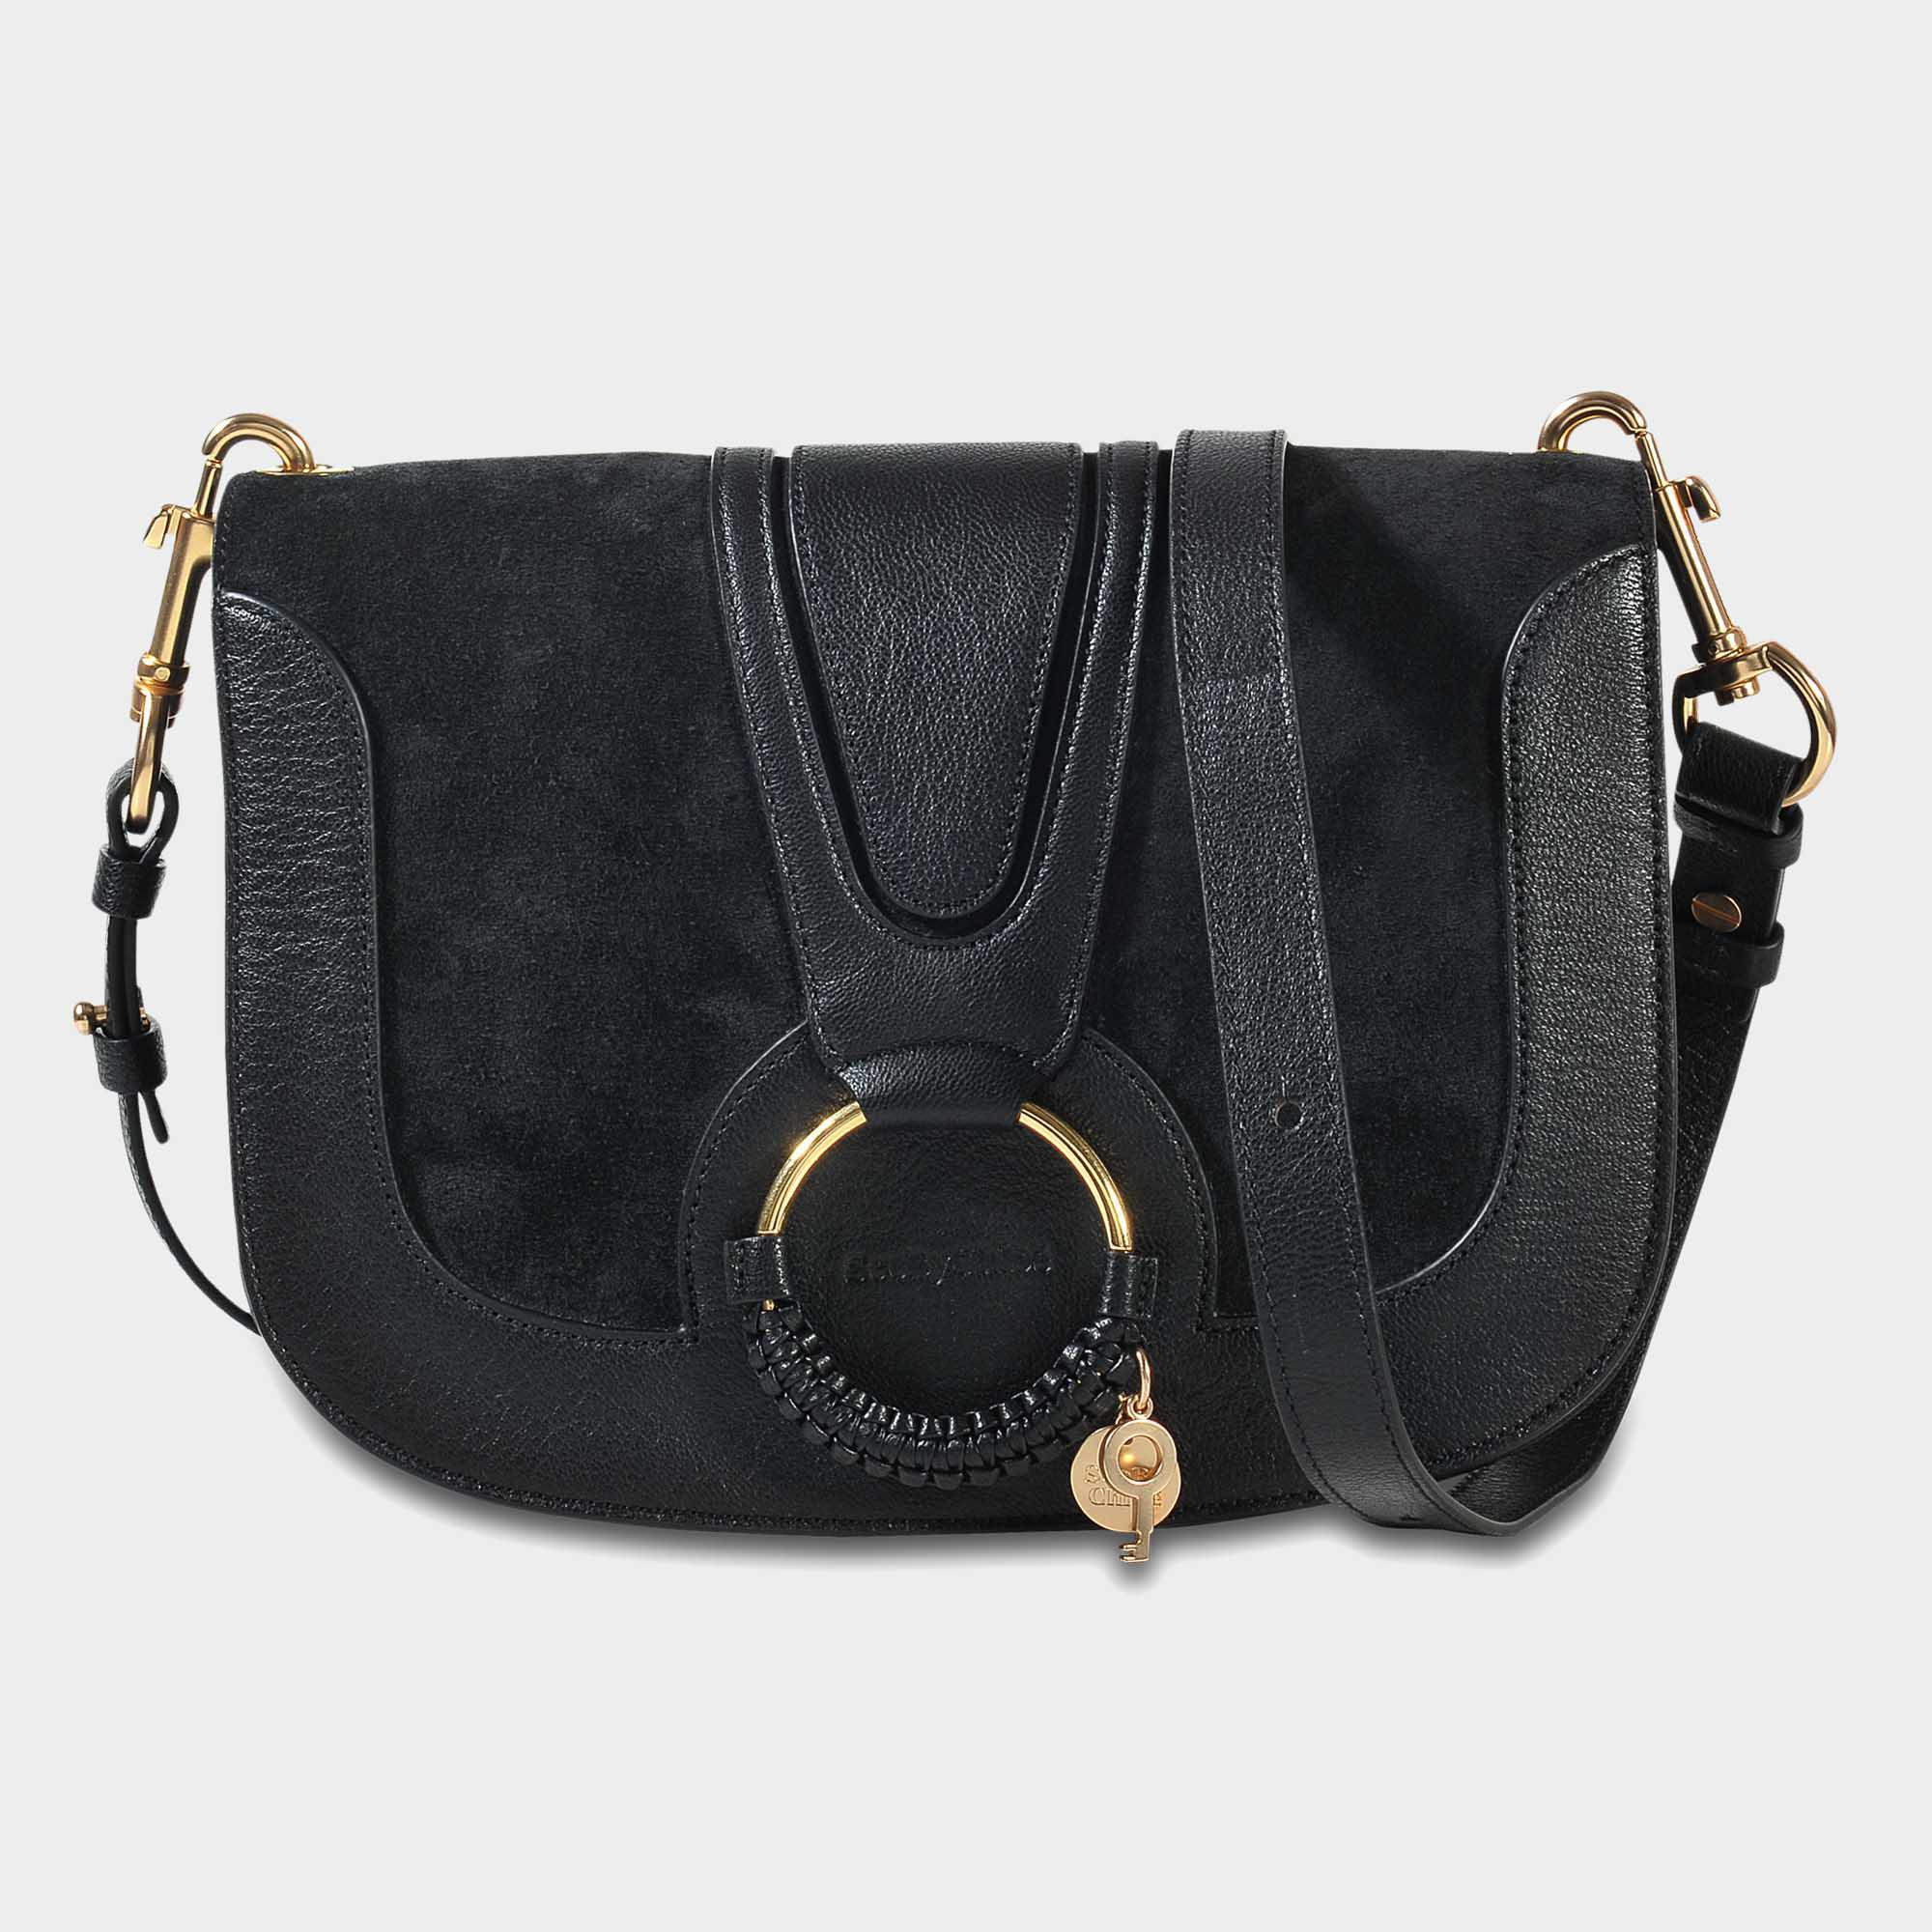 Kriss Medium Crossbody Bag in Black Grained Cowskin and Suede See By Chloé Buy Cheap For Sale Outlet Clearance Store Cheap Professional Clearance Amazon RaByjSpG